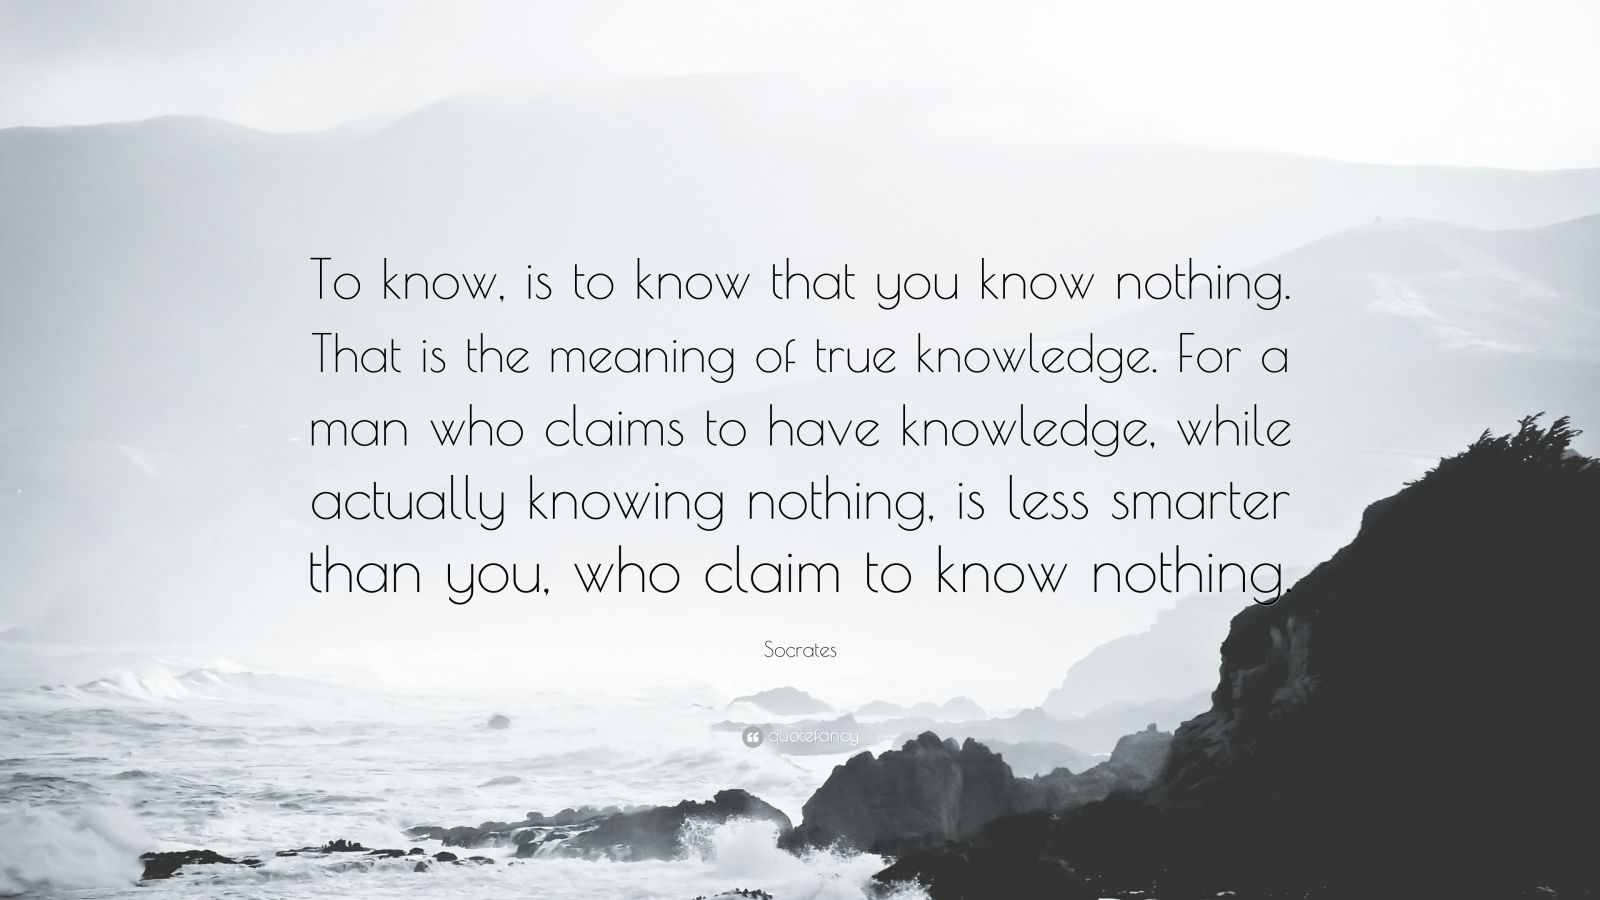 "Socrates Quote: ""To know, is to know that you know nothing. That is the meaning of true knowledge. For a man who claims to have knowledge, while actually knowing nothing, is less smarter than you, who claim to know nothing."""